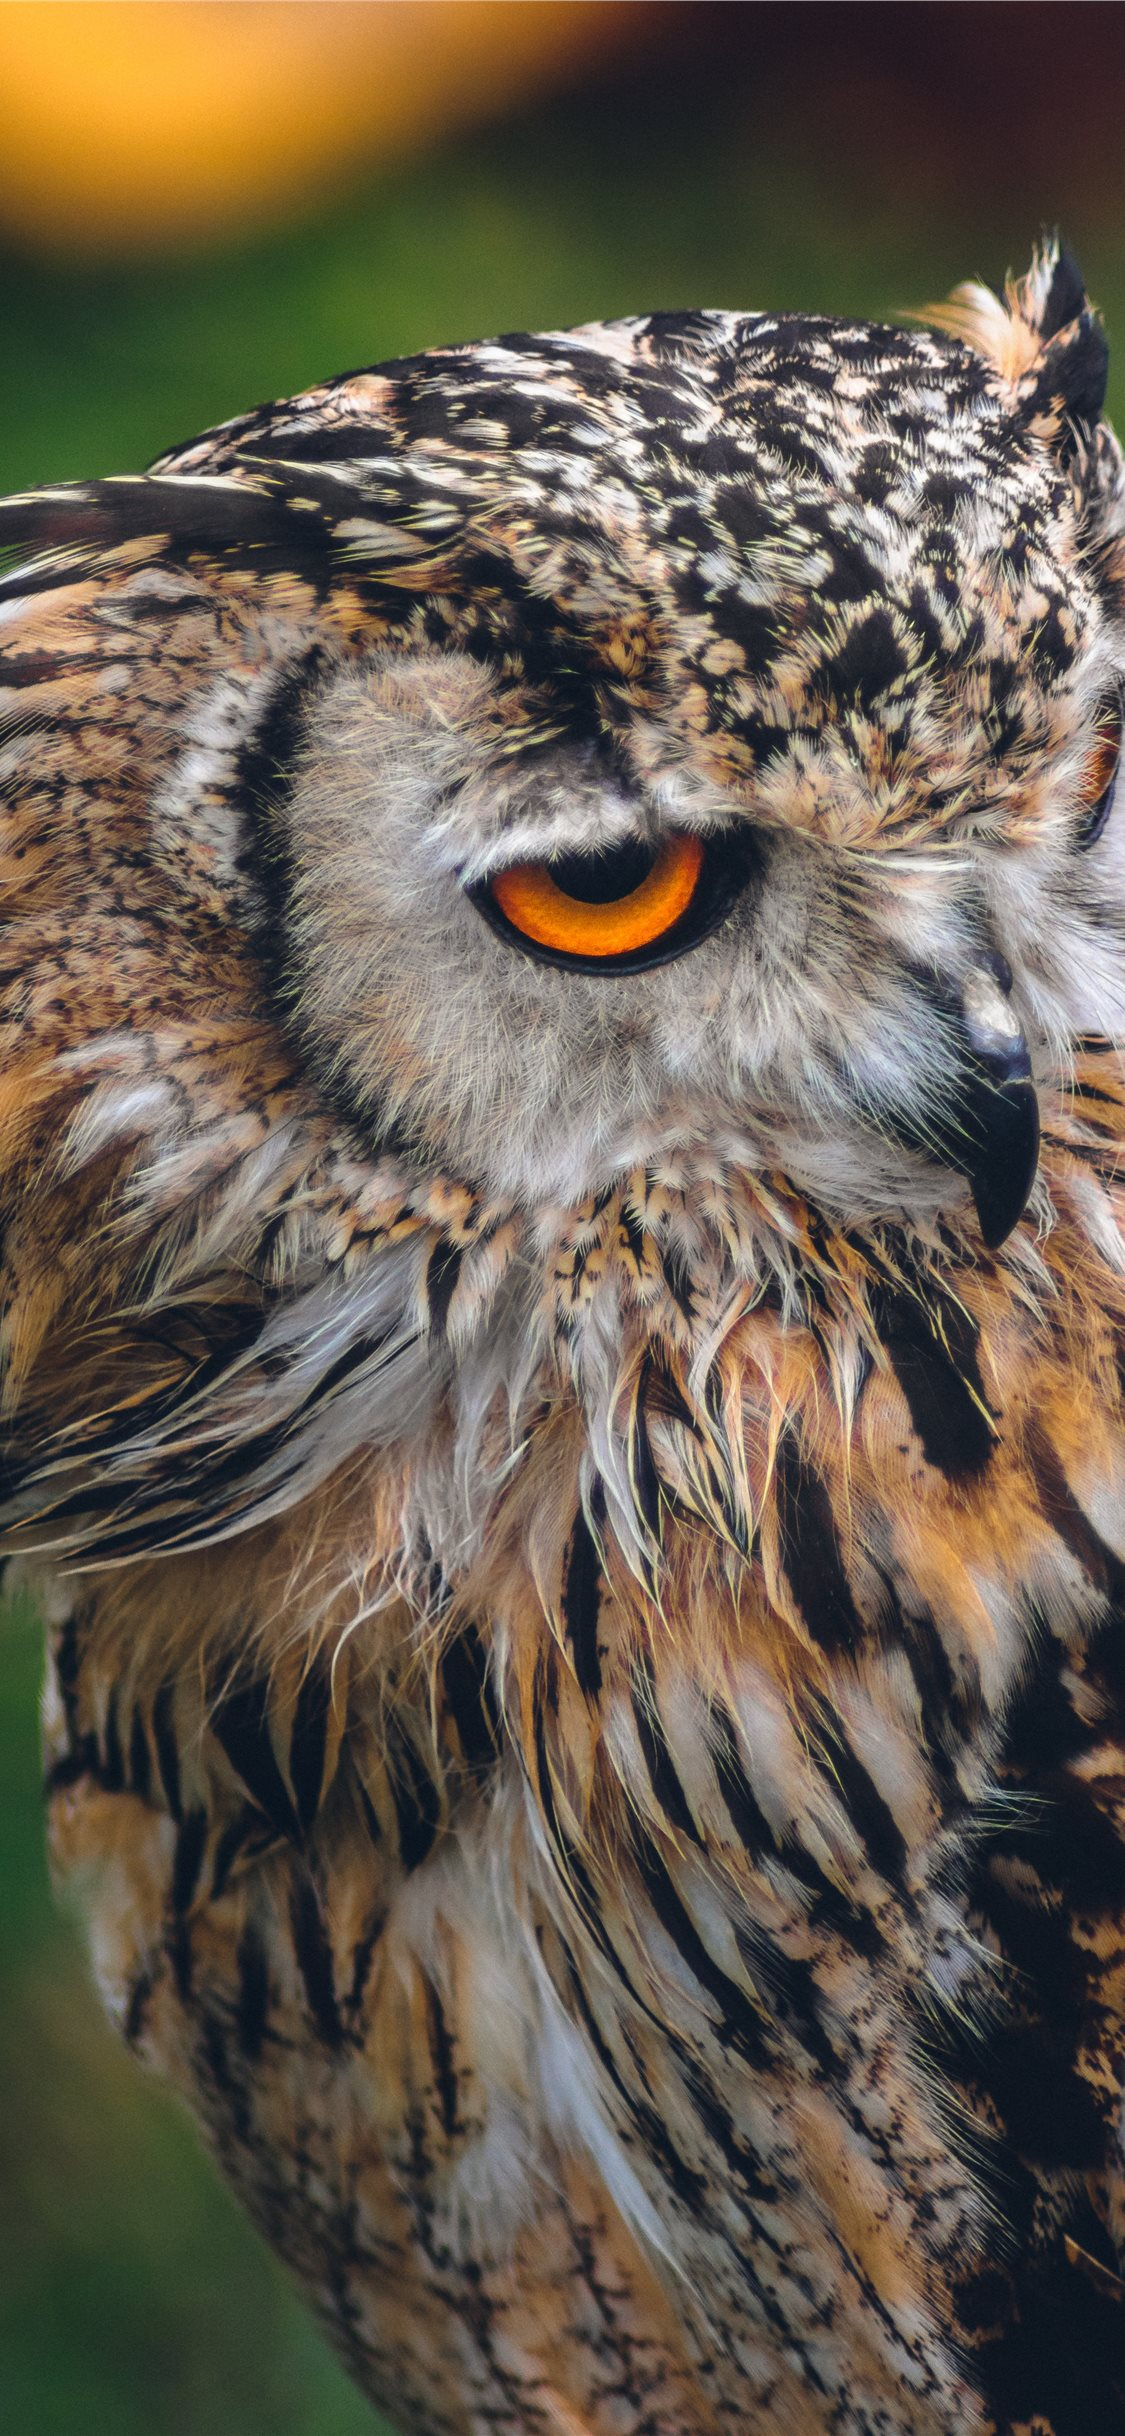 Owl Iphone Wallpapers Free Download